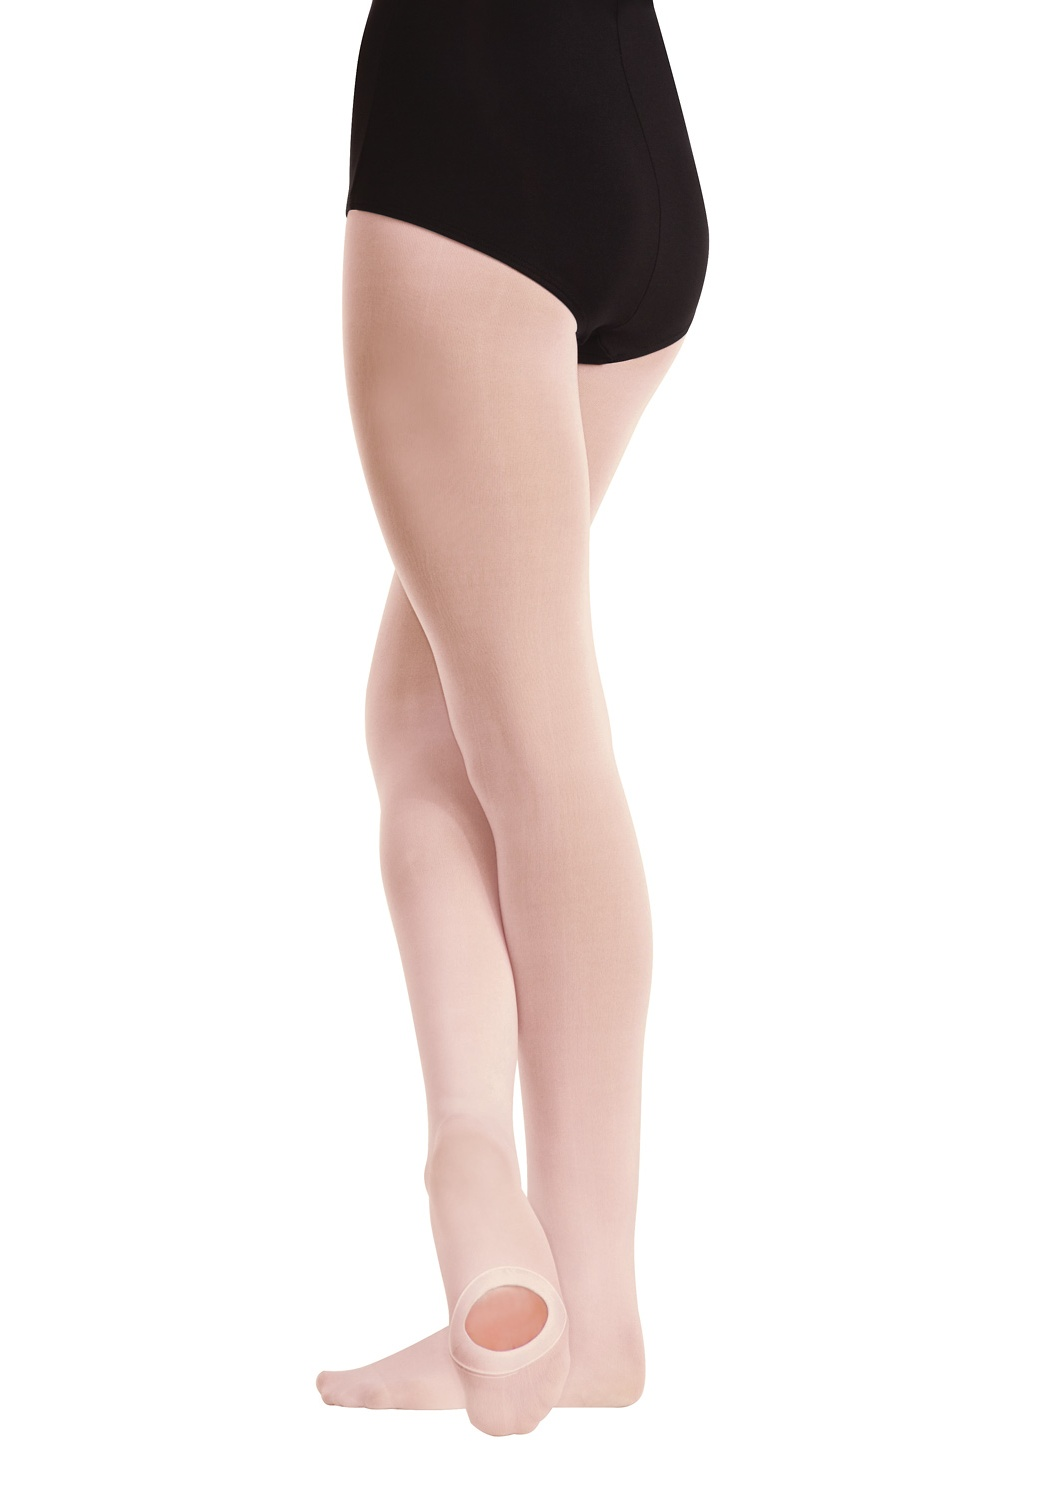 4-7 Body Wrappers C81 Suntan Girl/'s Size Small//Medium Convertible Tights